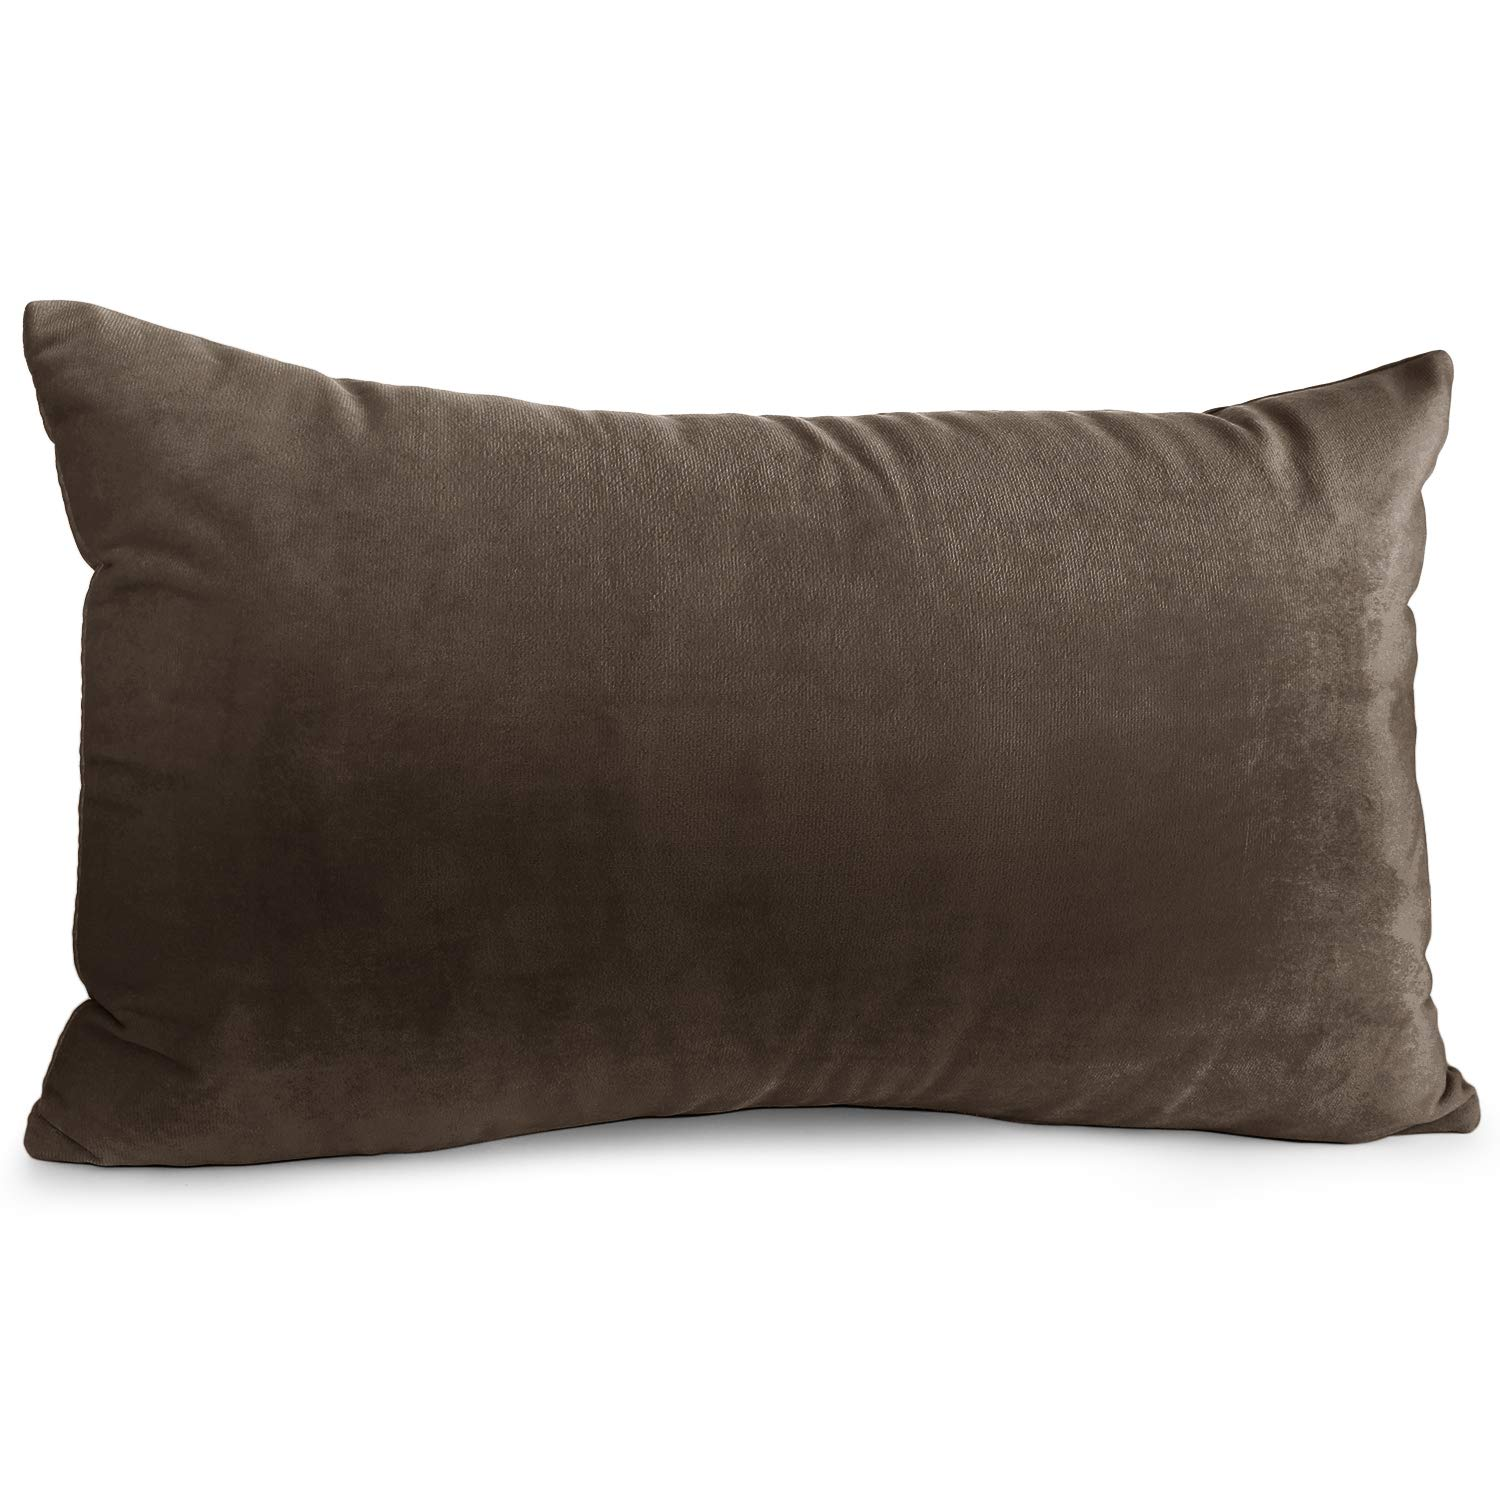 """Nestl Bedding Throw Pillow Cover 12"""" x 20"""" Soft Square Decorative Throw Pillow Covers Cozy Velvet Cushion Case for Sofa Couch Bedroom - Chocolate Brown"""